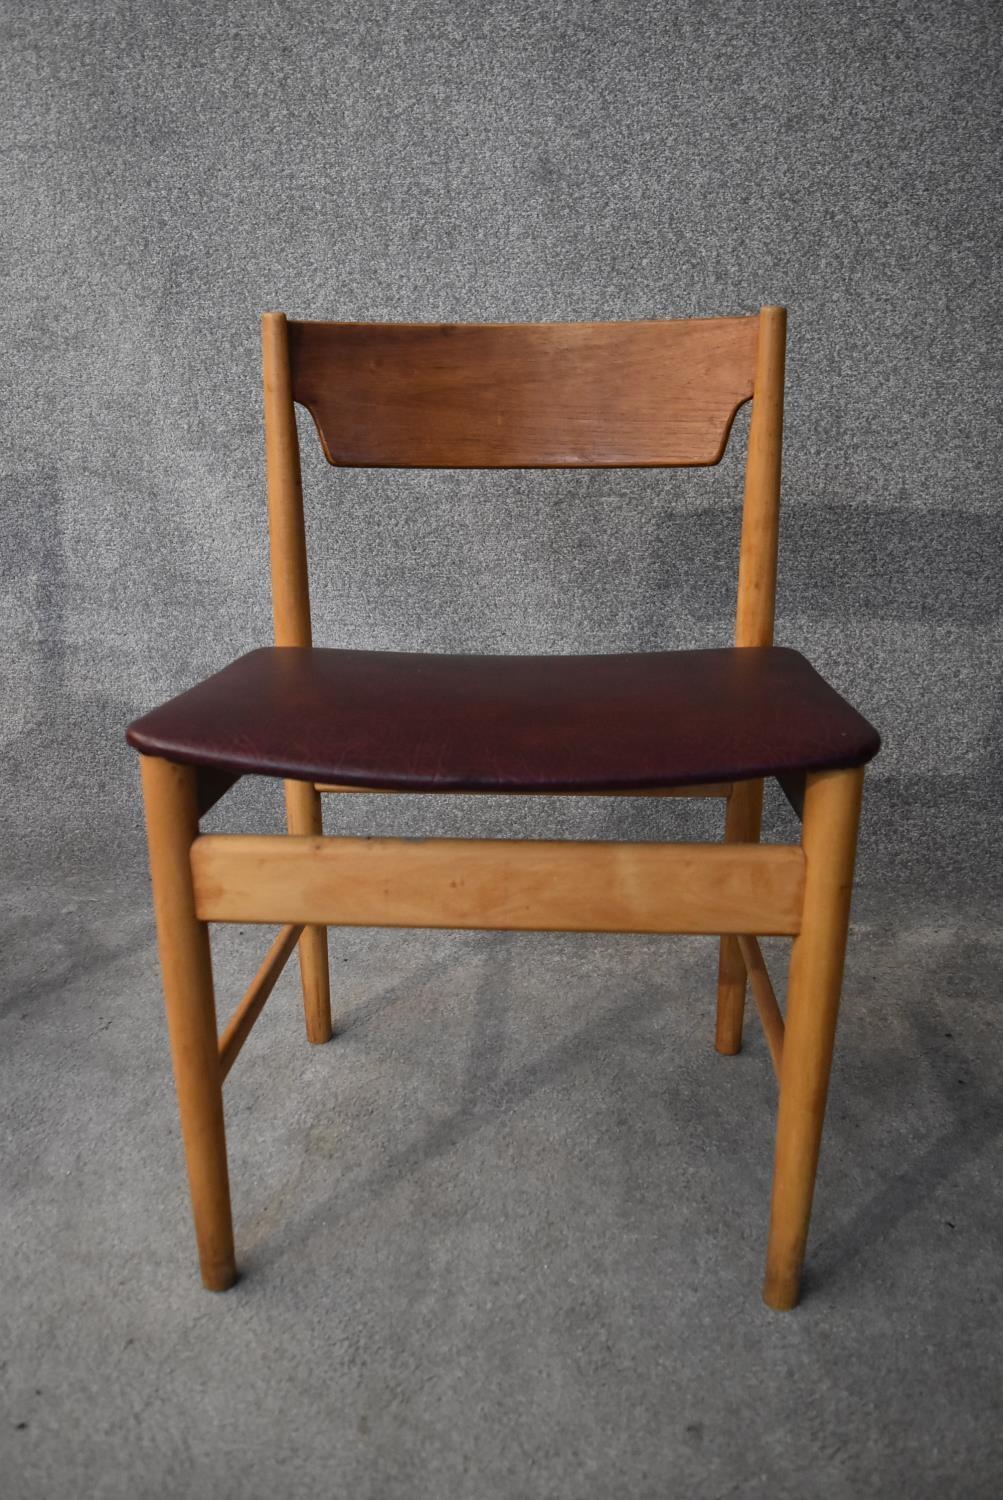 A set of four mid 20th century teak dining chairs in faux grained leather burgundy upholstery H. - Image 3 of 4